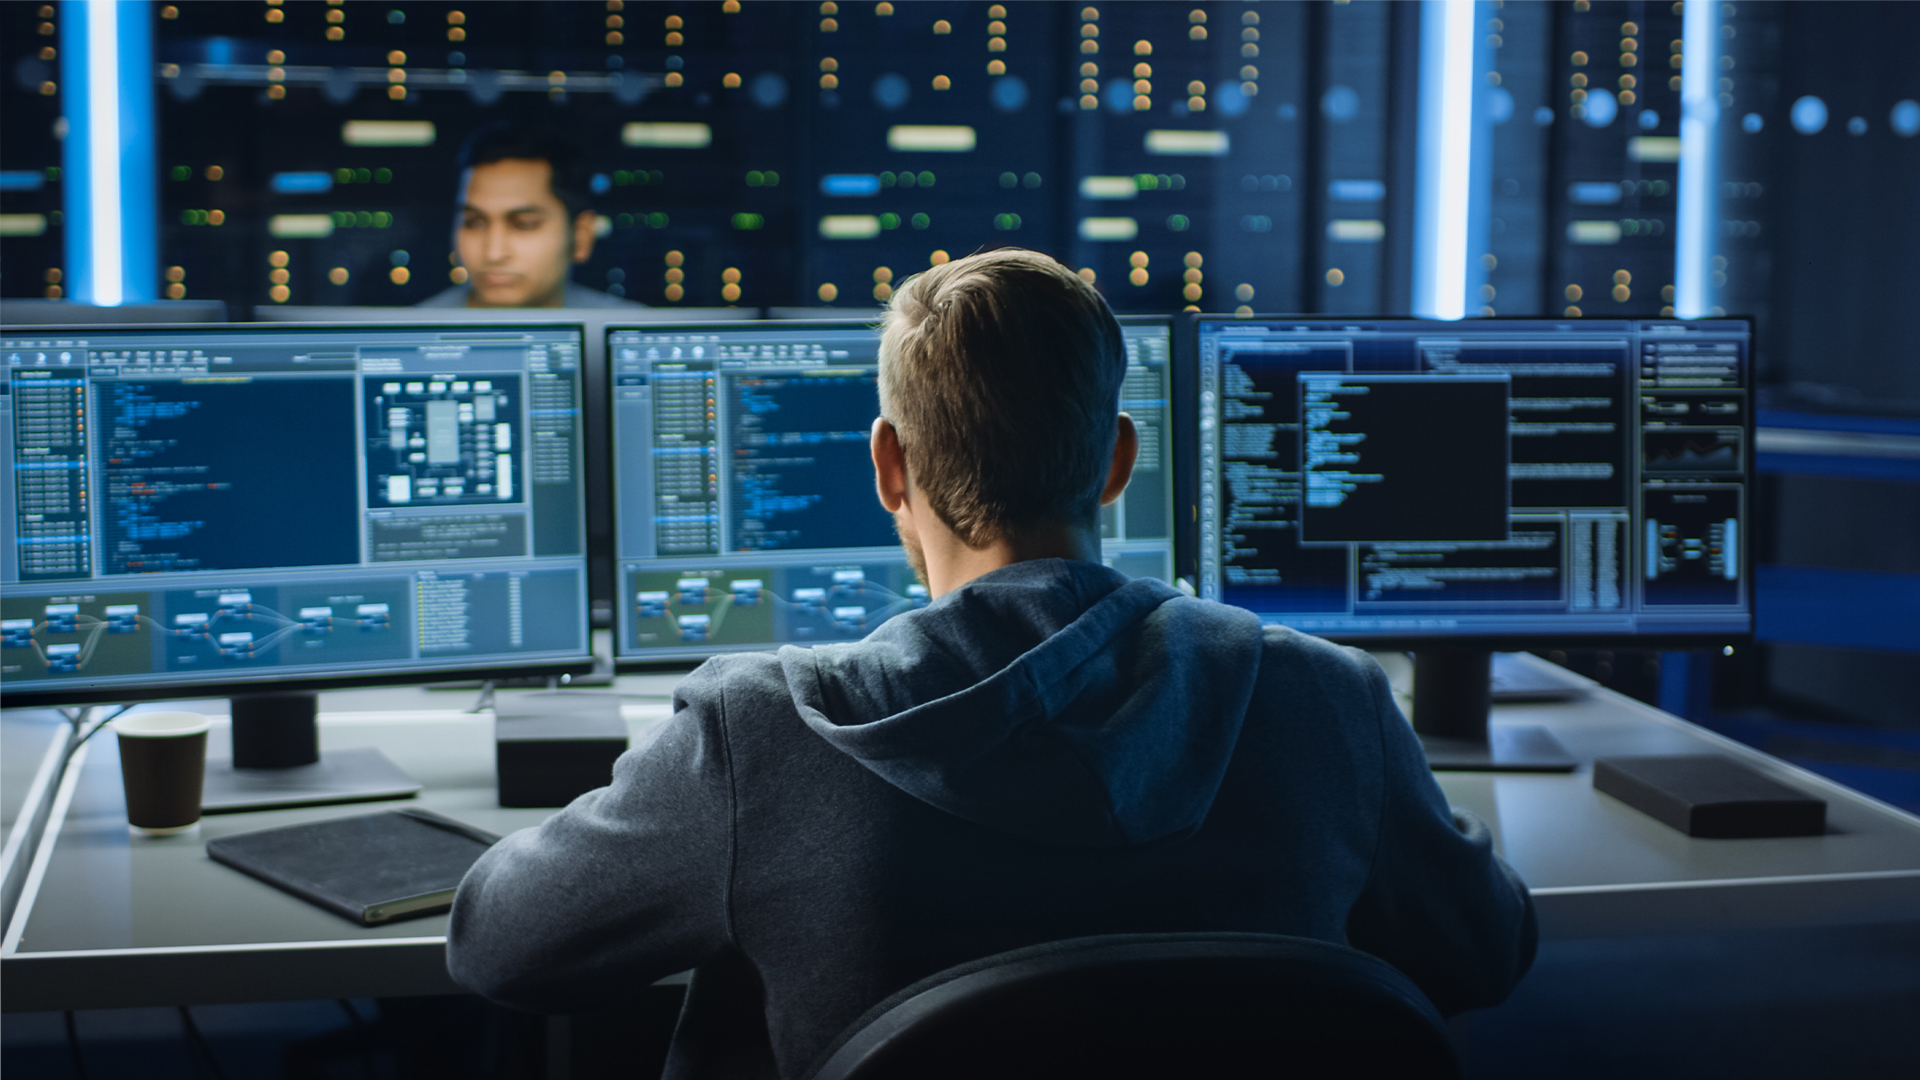 Image of a person in a data center control room looking at lines of code on a computer screen meant to be AWS Red Hat OpenShift console